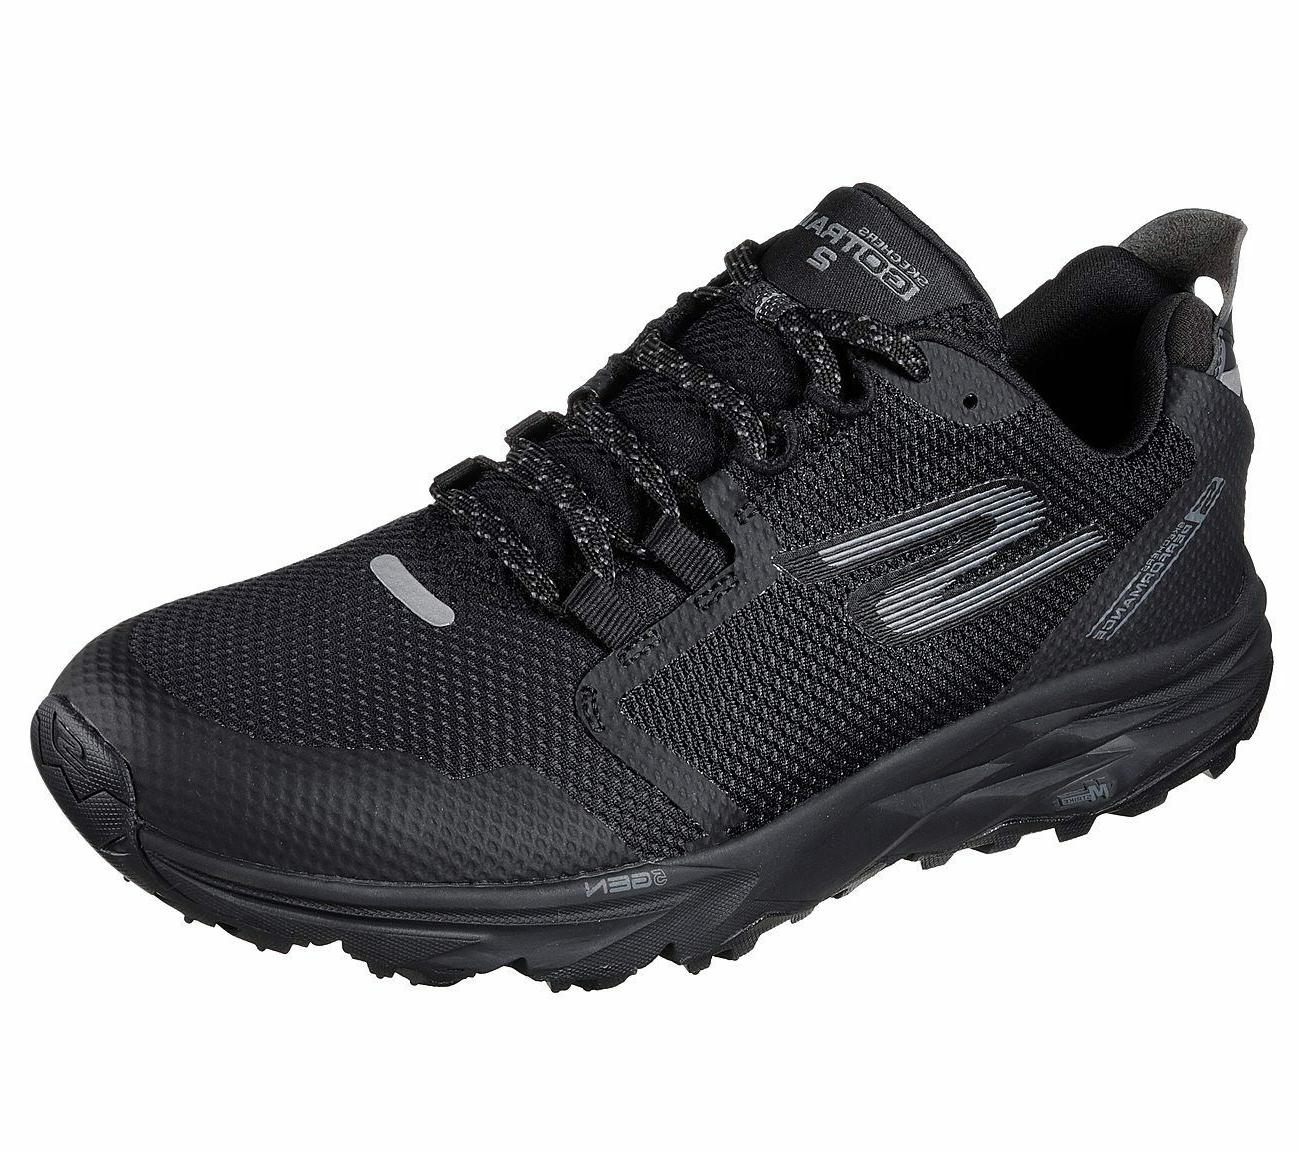 Performance Trail Comfort Running Shoes Go